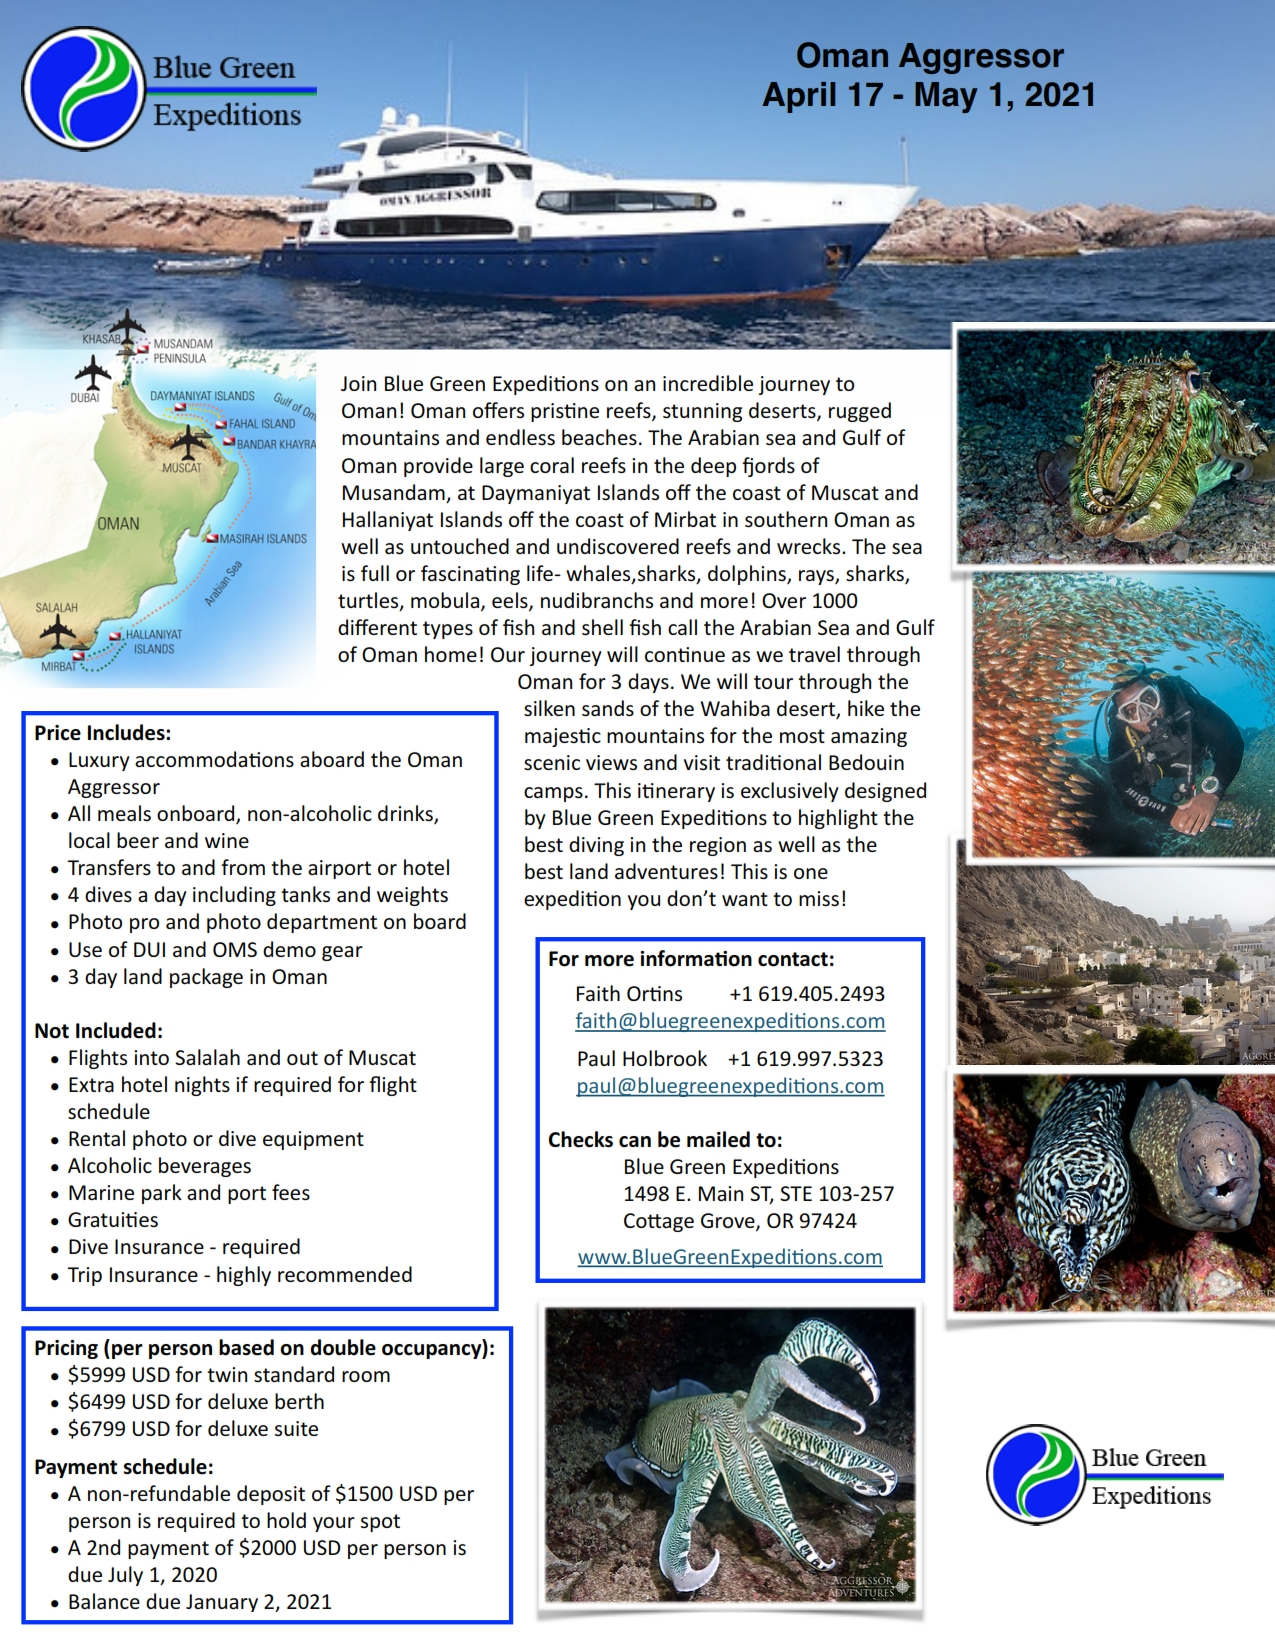 Oman Expedition, April 17 - May 1, 2021. Expedition description and pricing. PDF flyer contains the same information.